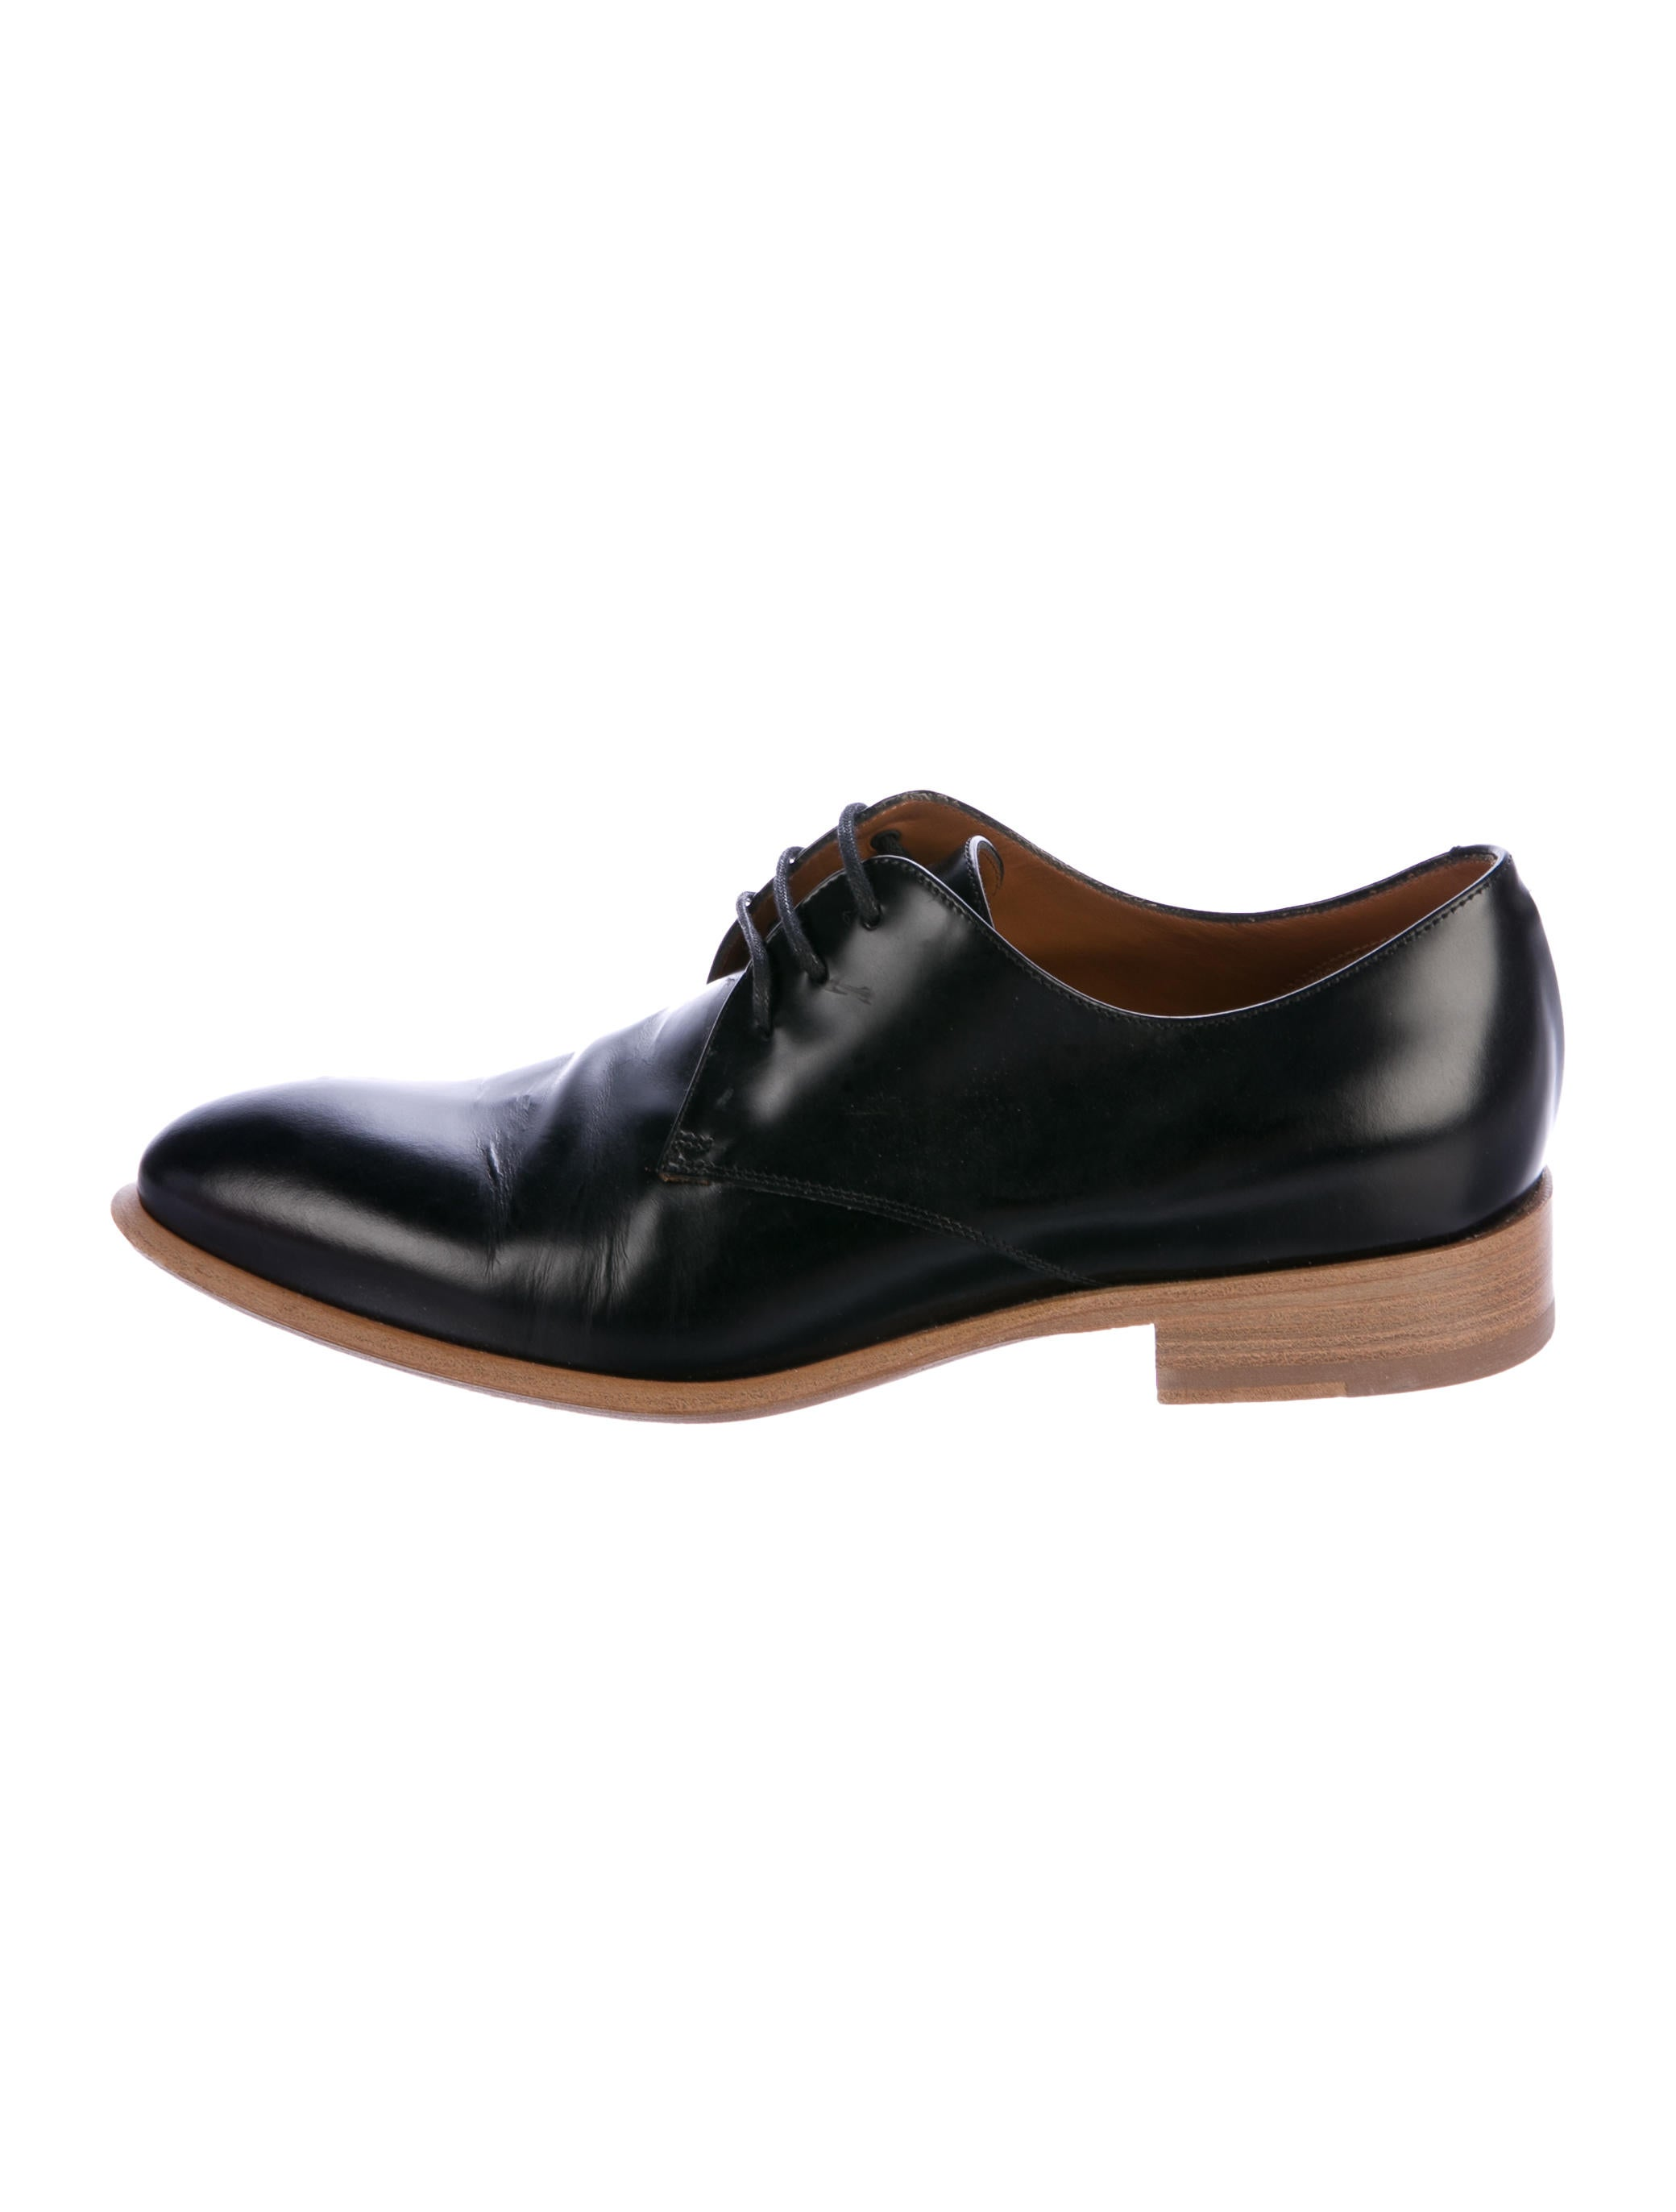 outlet 100% guaranteed buy online authentic Céline Leather Round-Toe Oxfords 2014 cheap price clearance for nice hoyF0GK